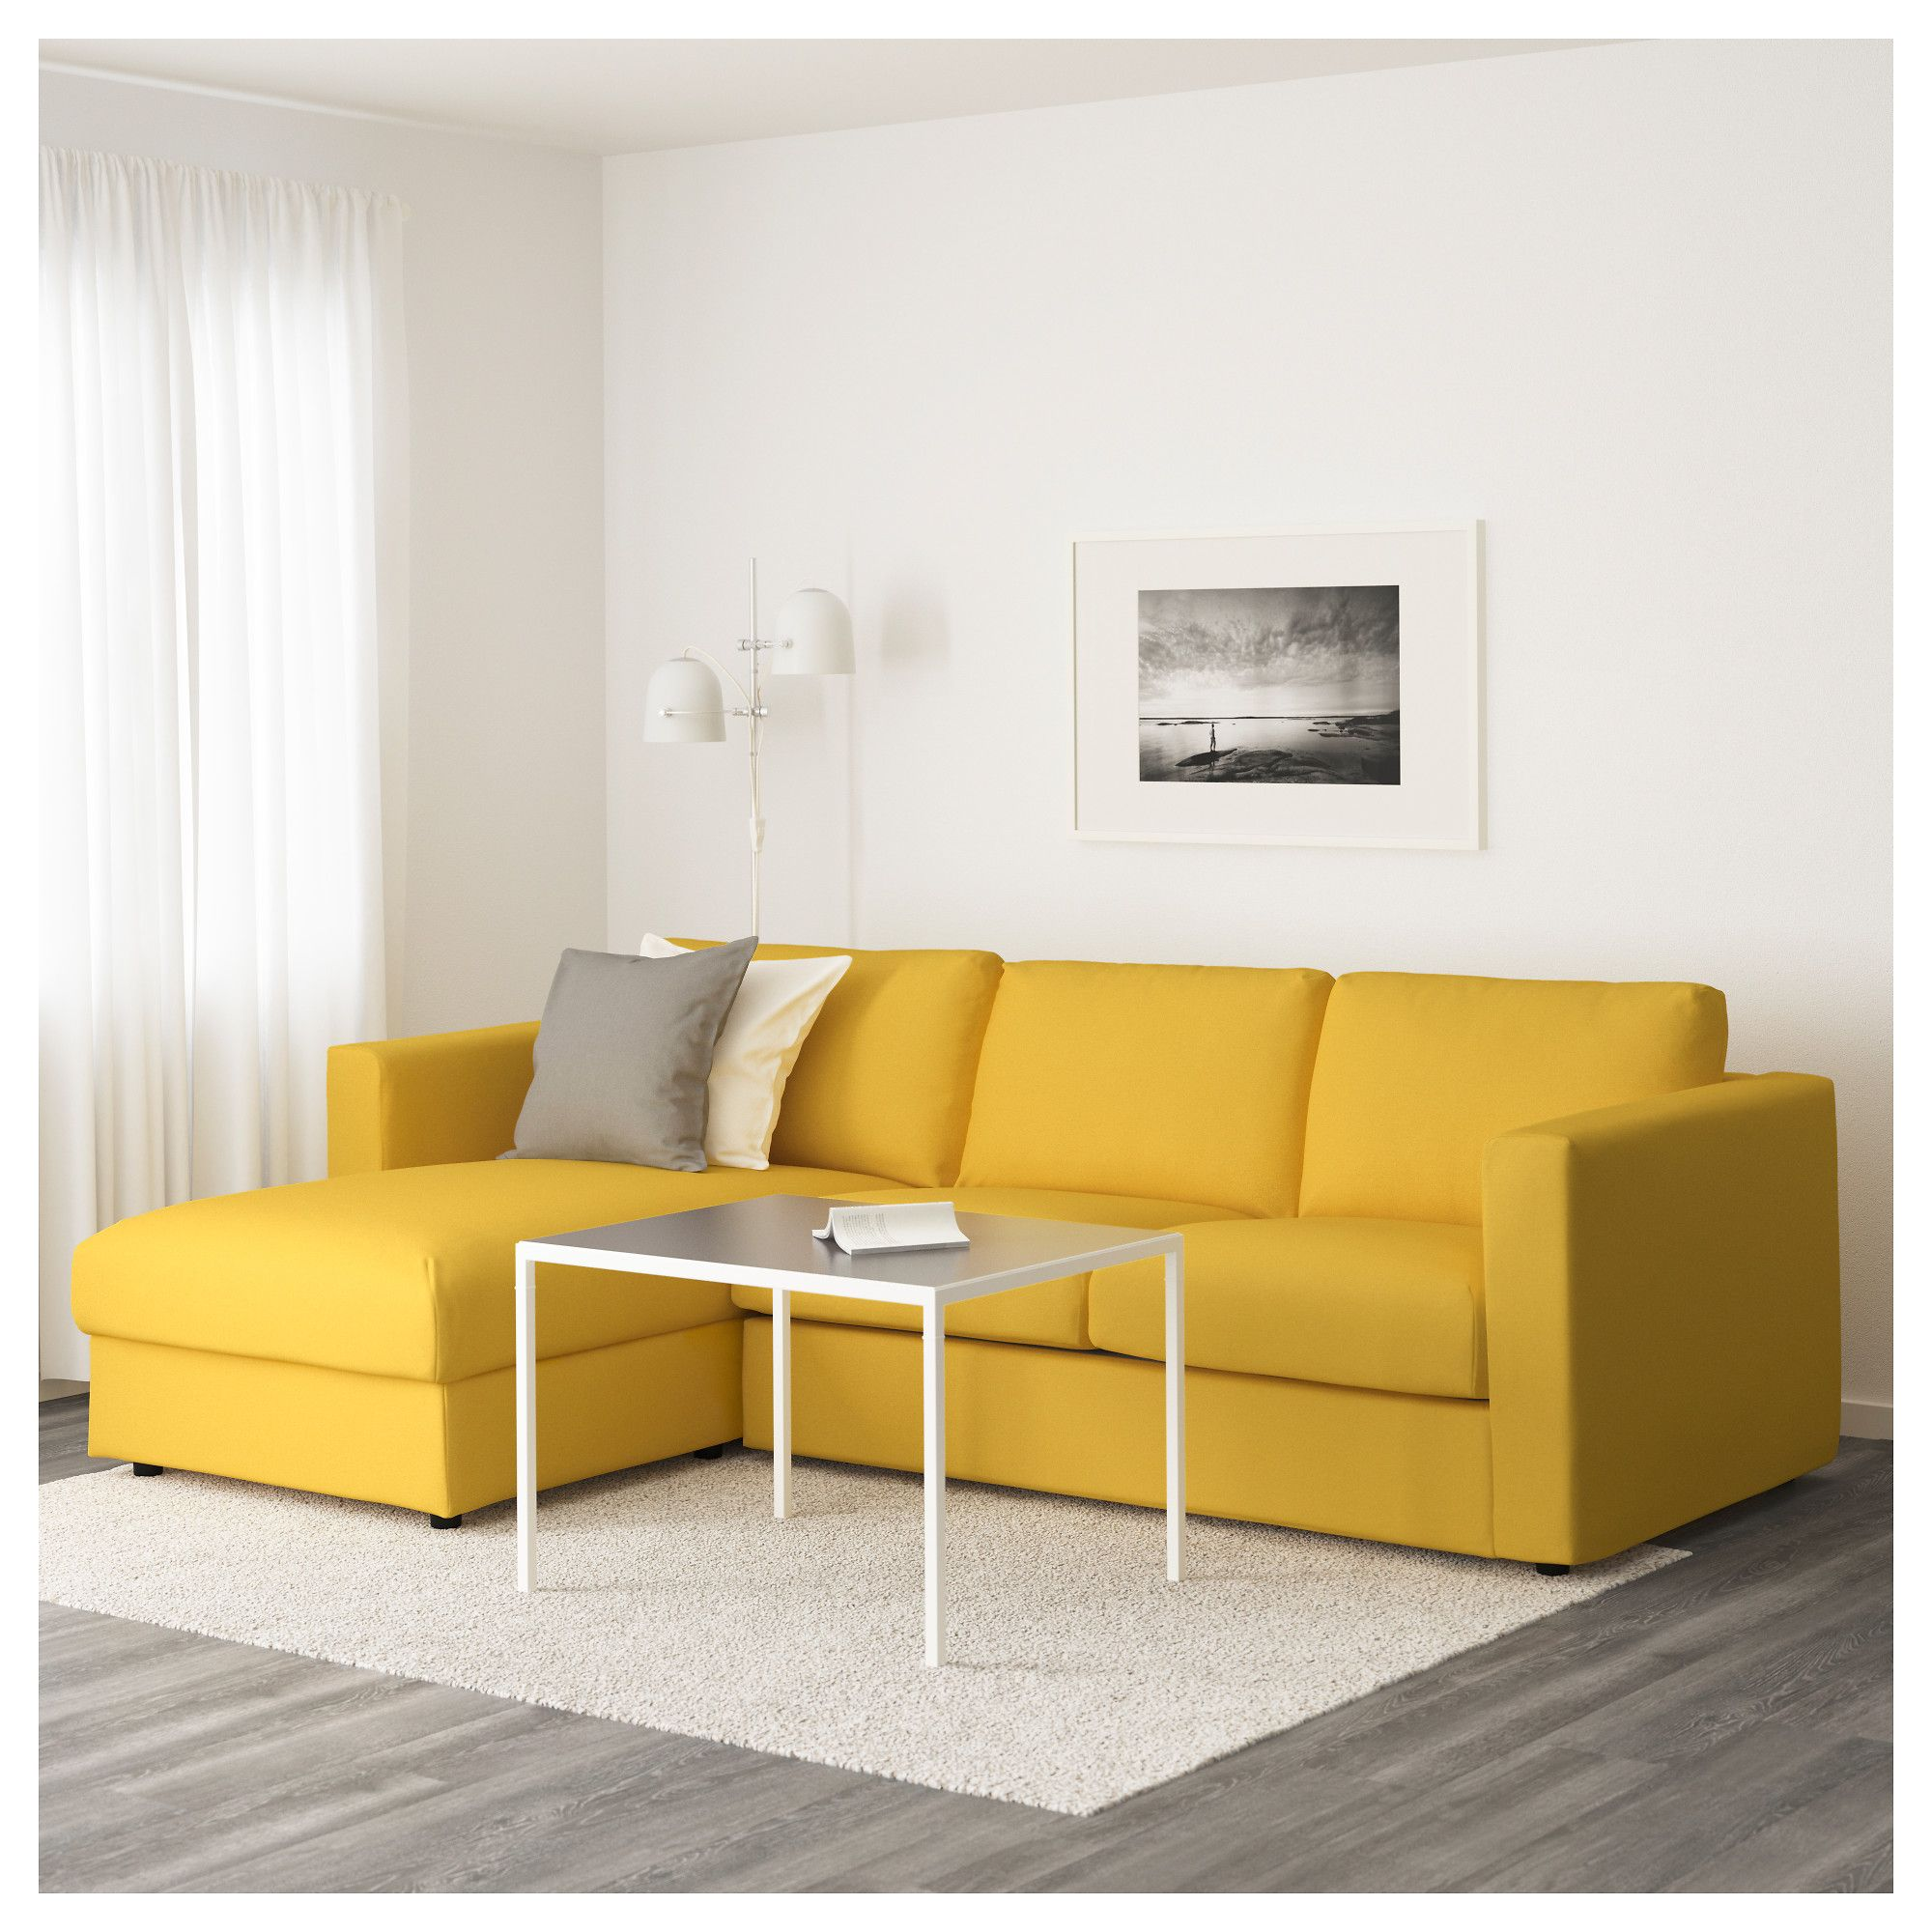 Vimle Sofa With Chaise Orrsta Golden Yellow In 2019